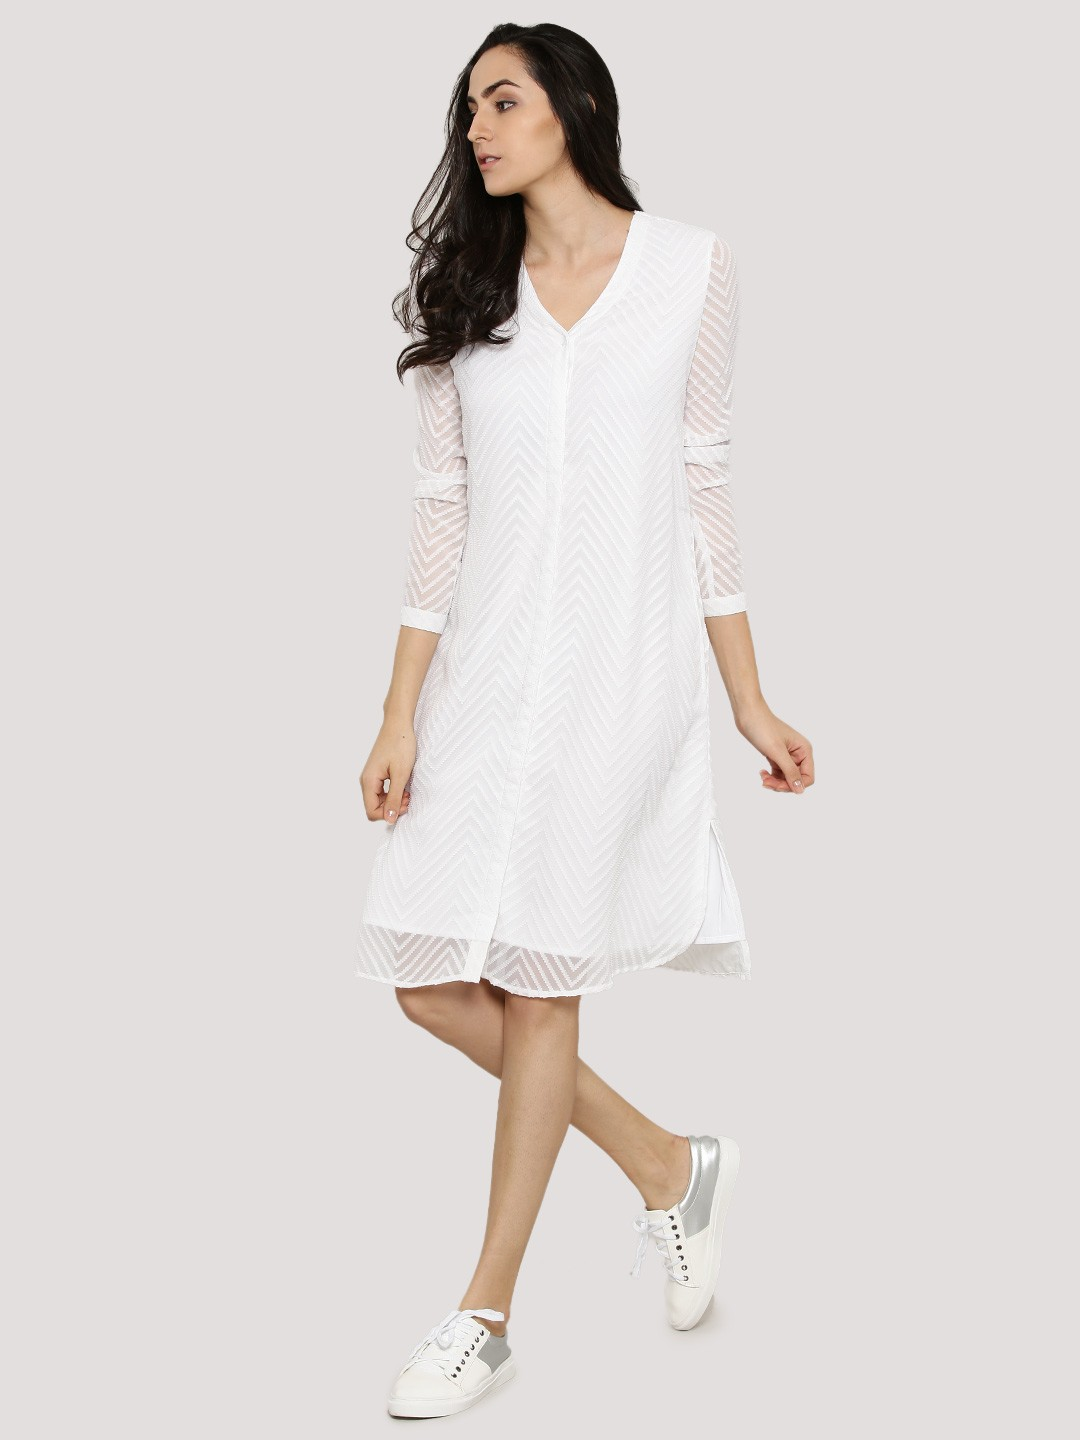 Buy femella white dobby shirt dress for women women 39 s Buy white dress shirt